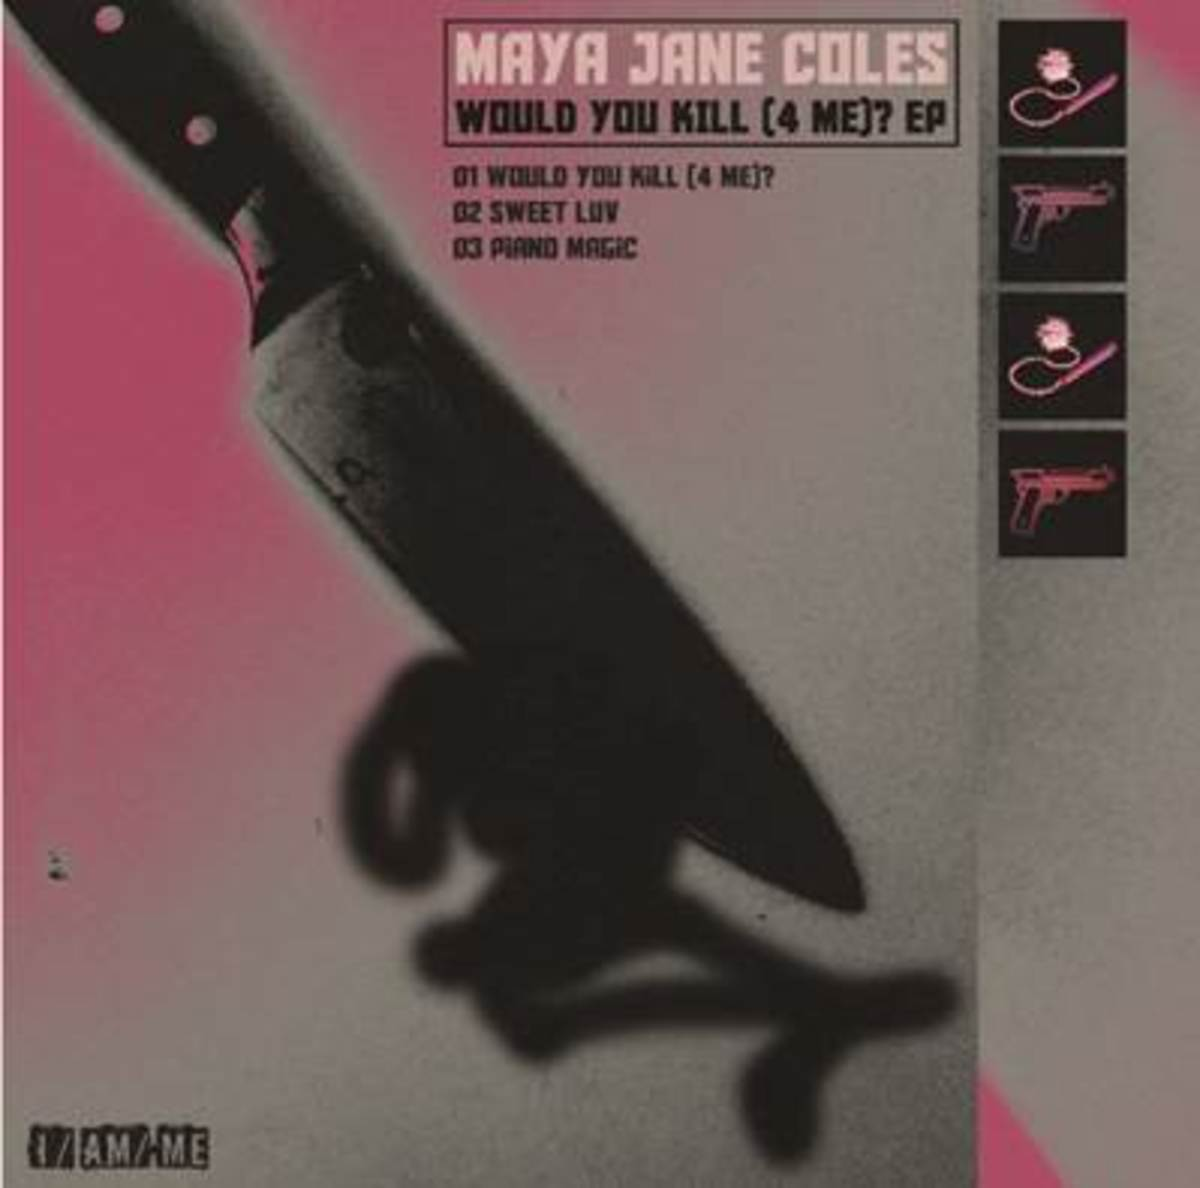 Maya Jane Coles - Would You Kill (4 Me)? EP